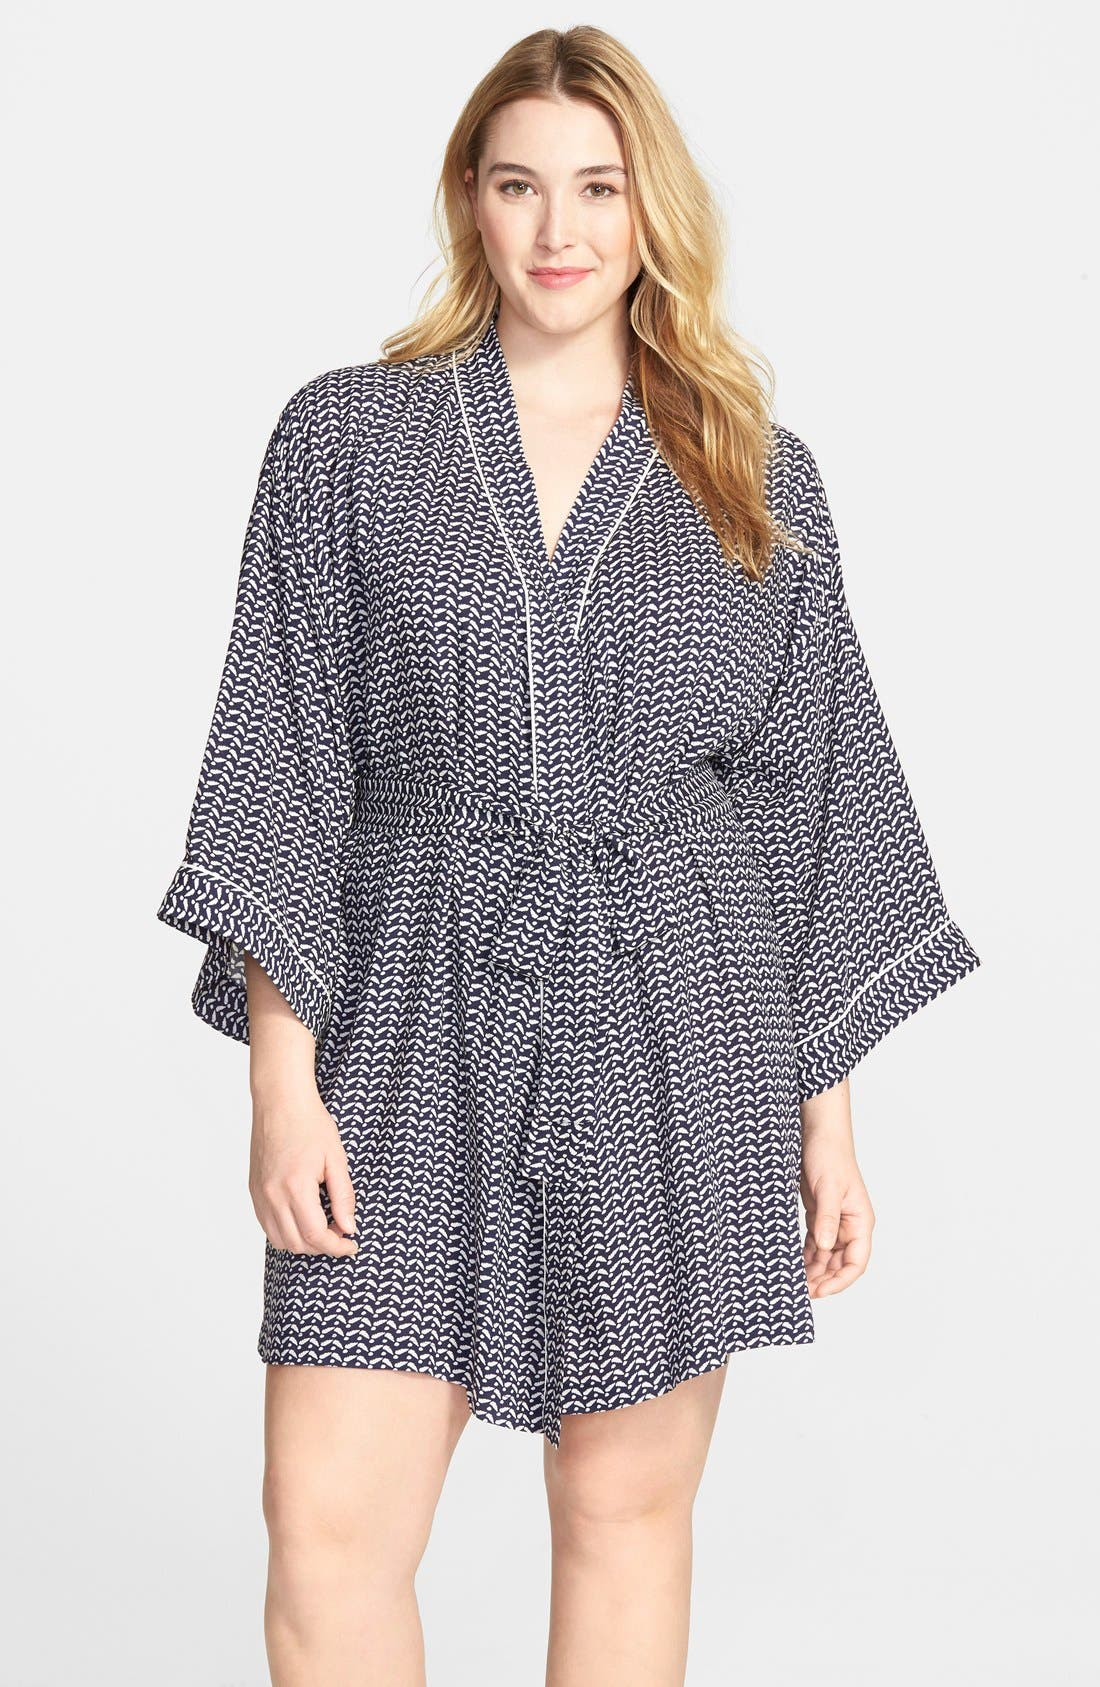 Nordstrom 'Sweet Dreams' Woven Robe,                             Main thumbnail 1, color,                             410